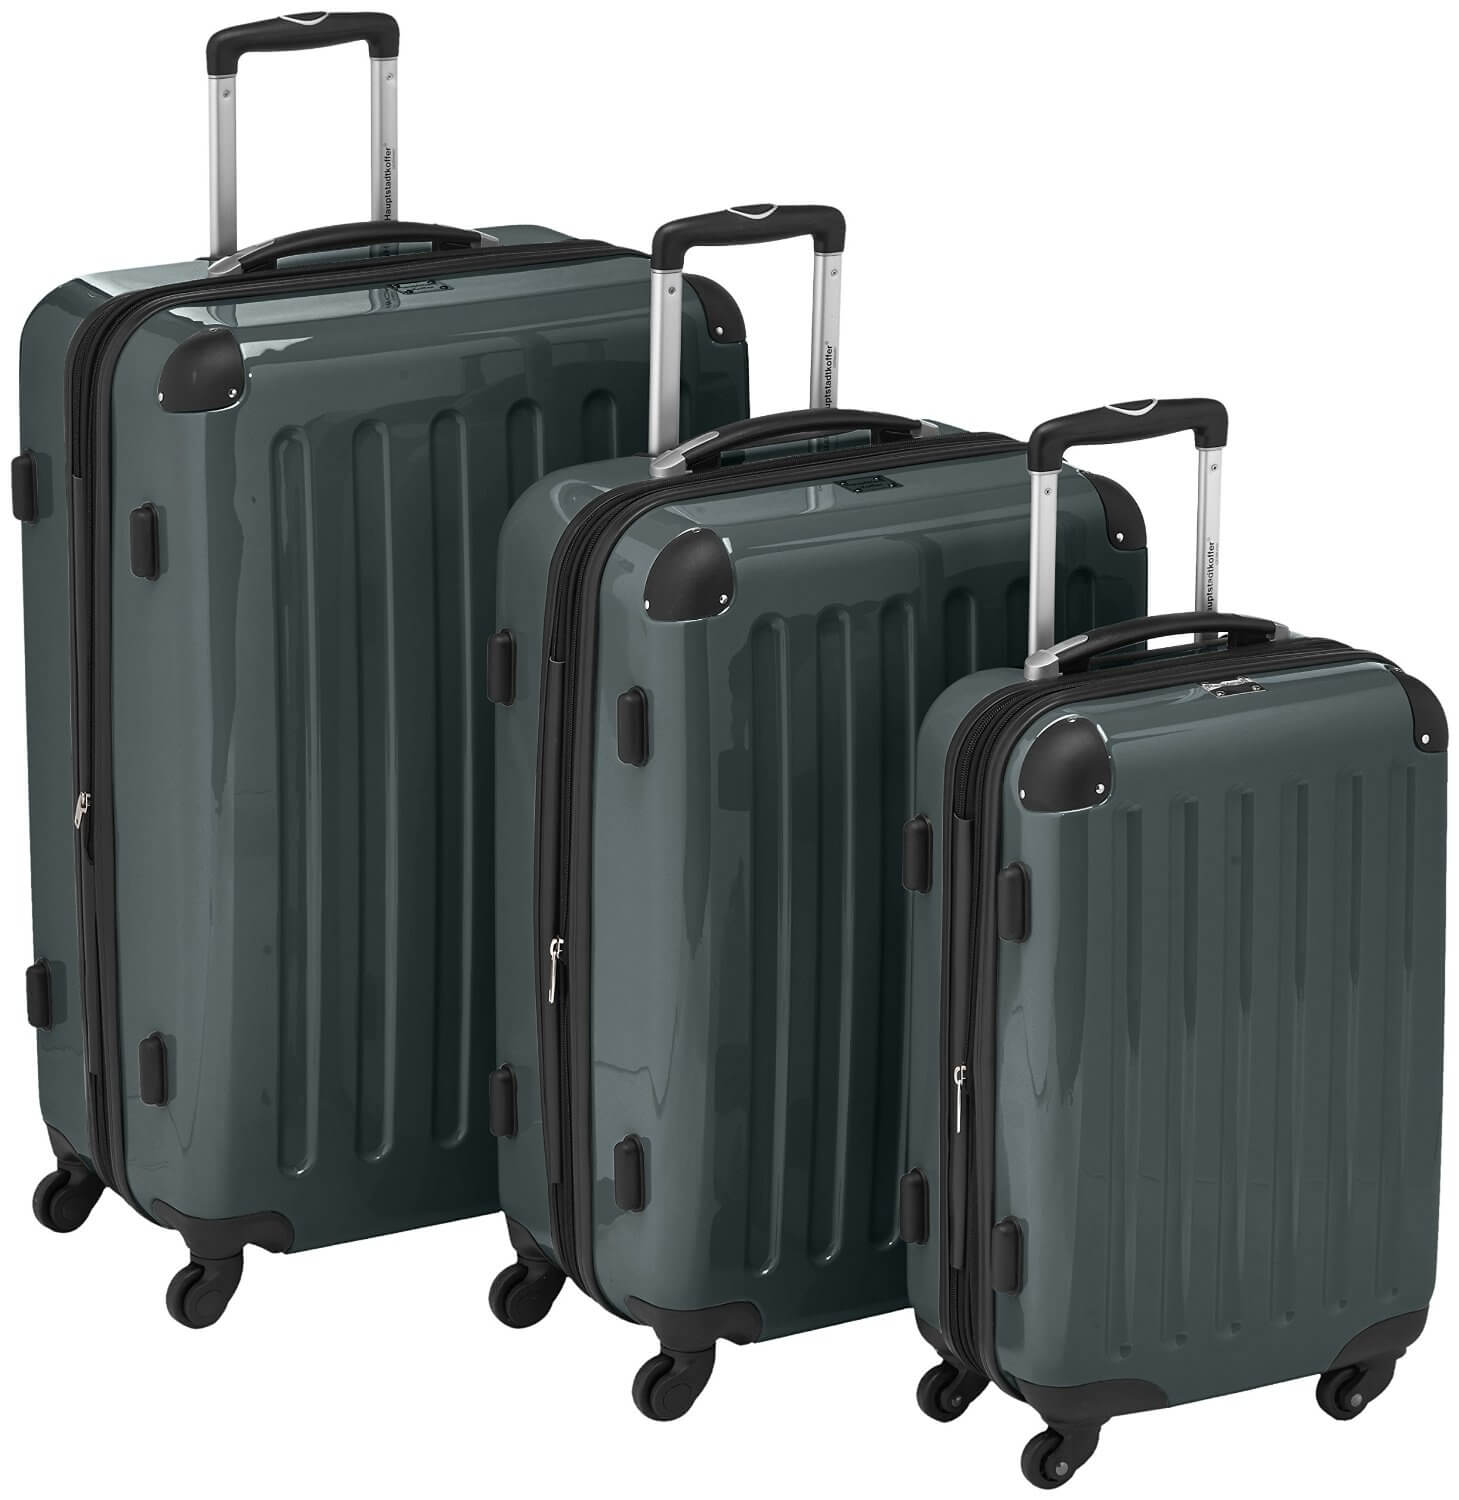 Lightweight Hand Luggage On Wheels - Best Of 2016 - 2017 UK